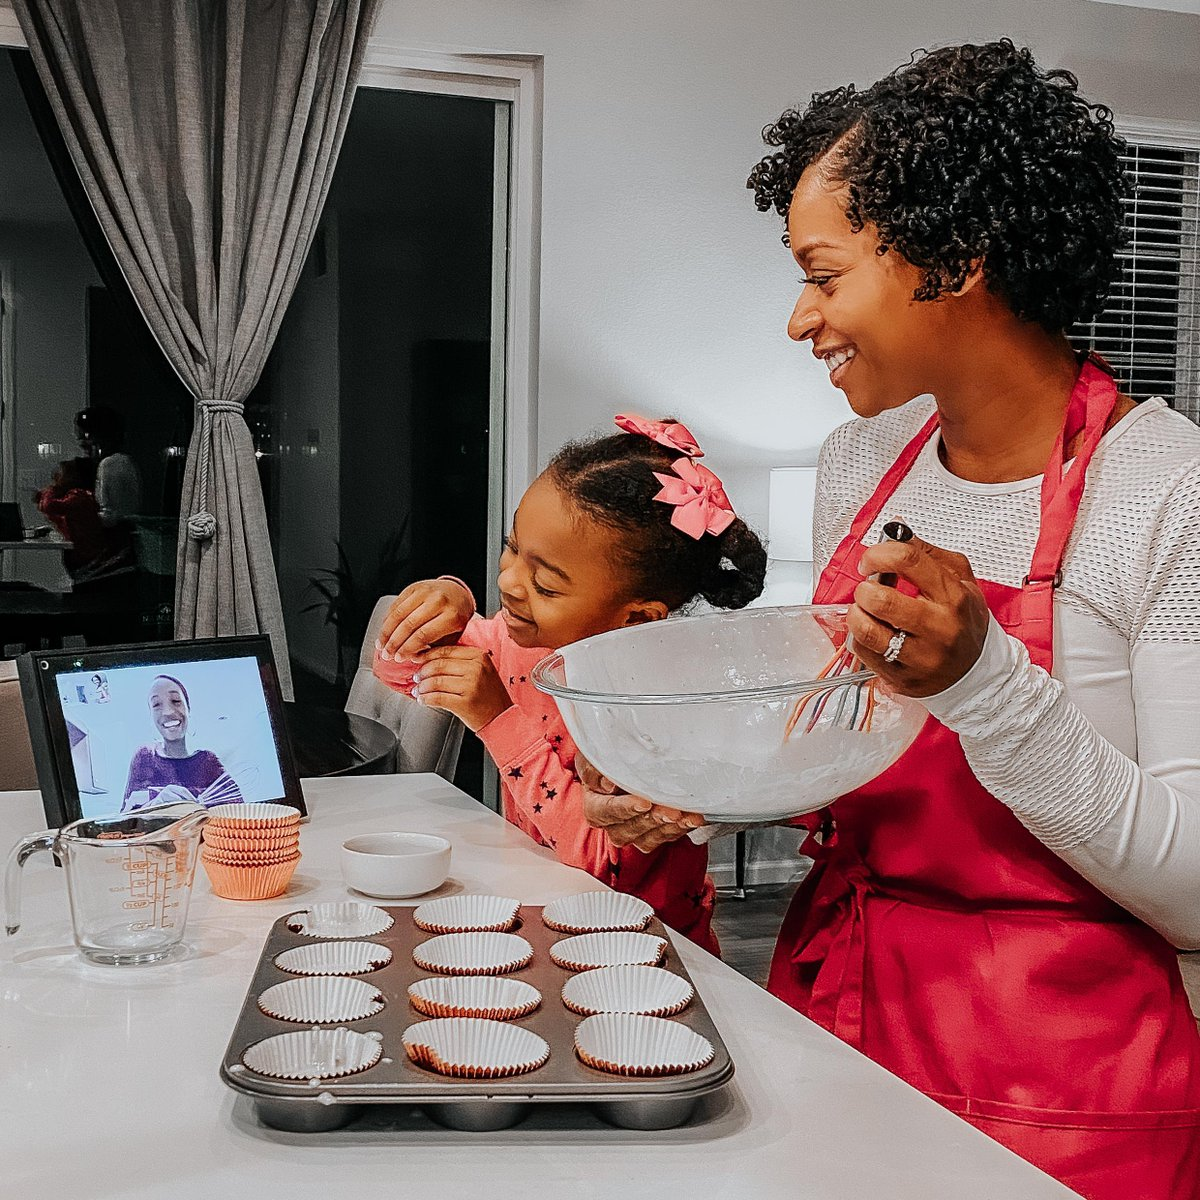 Holidays may look a little different this year, but with Portal, @MahoganyCurls and her sister are still able to keep up with their holiday baking traditions! 🧁What are some of your favorite holiday traditions? 😊 #PortalTraditions